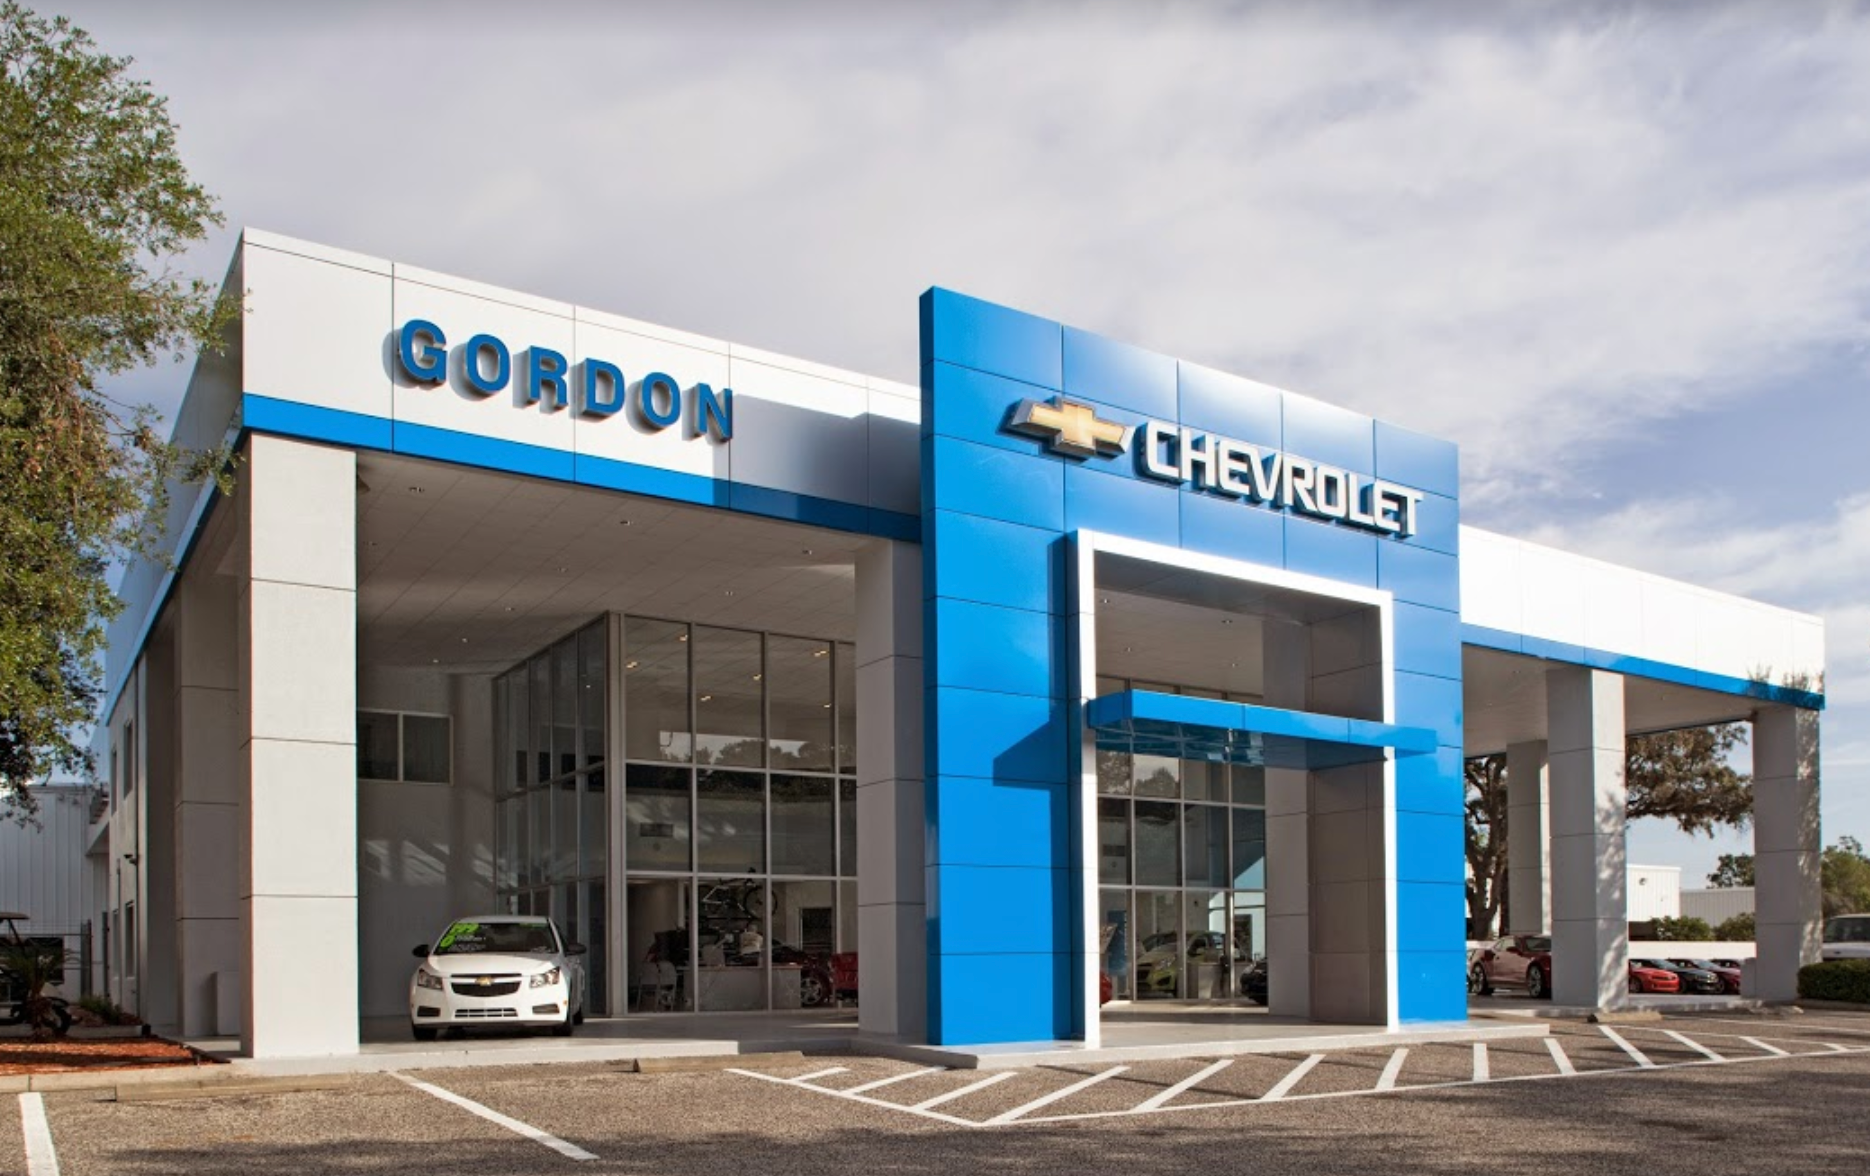 Gordon Chevrolet in Jacksonville